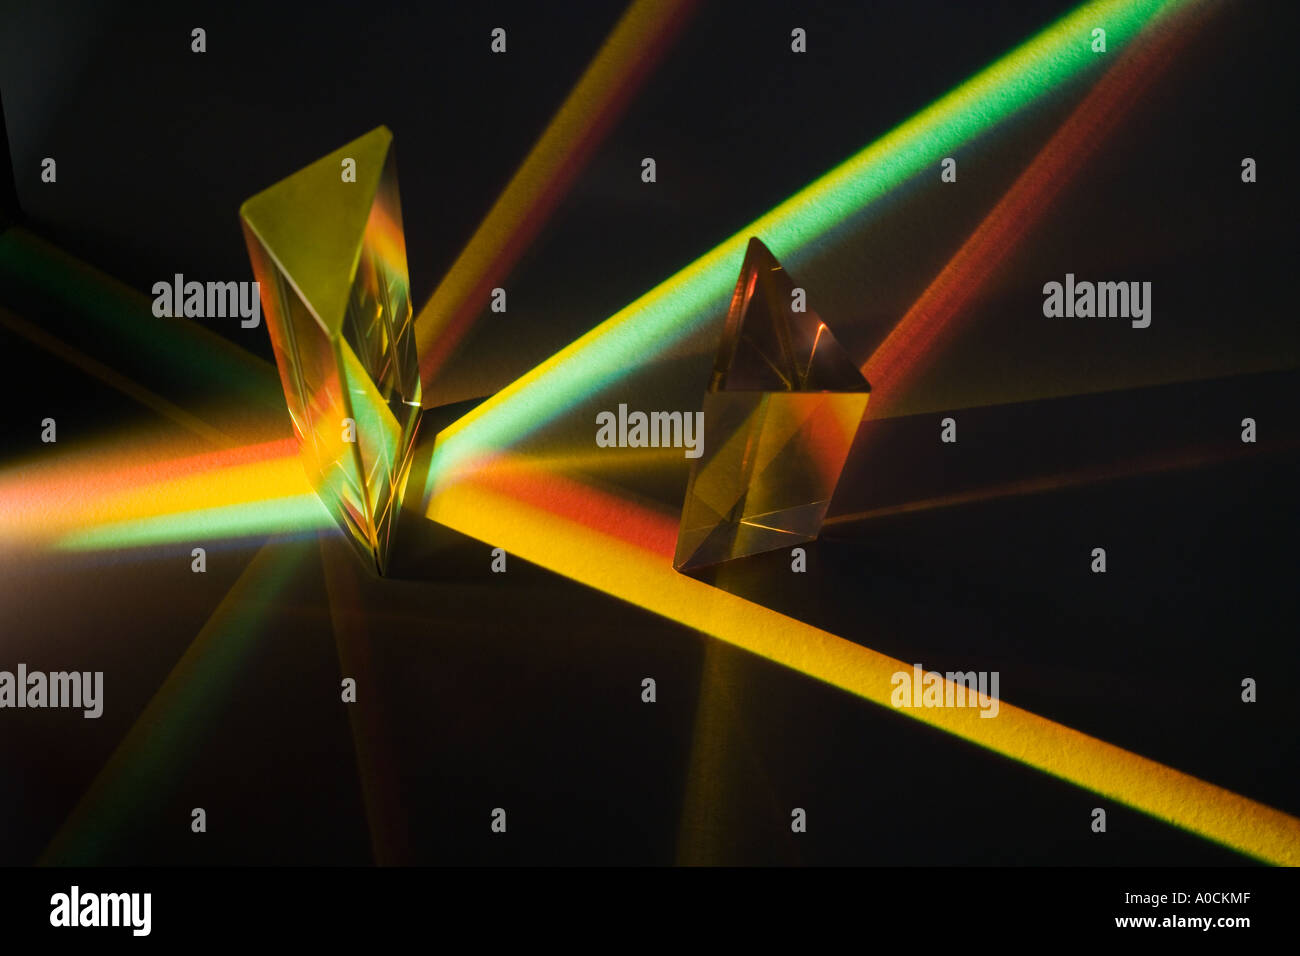 Light passing through two prisms - Stock Image